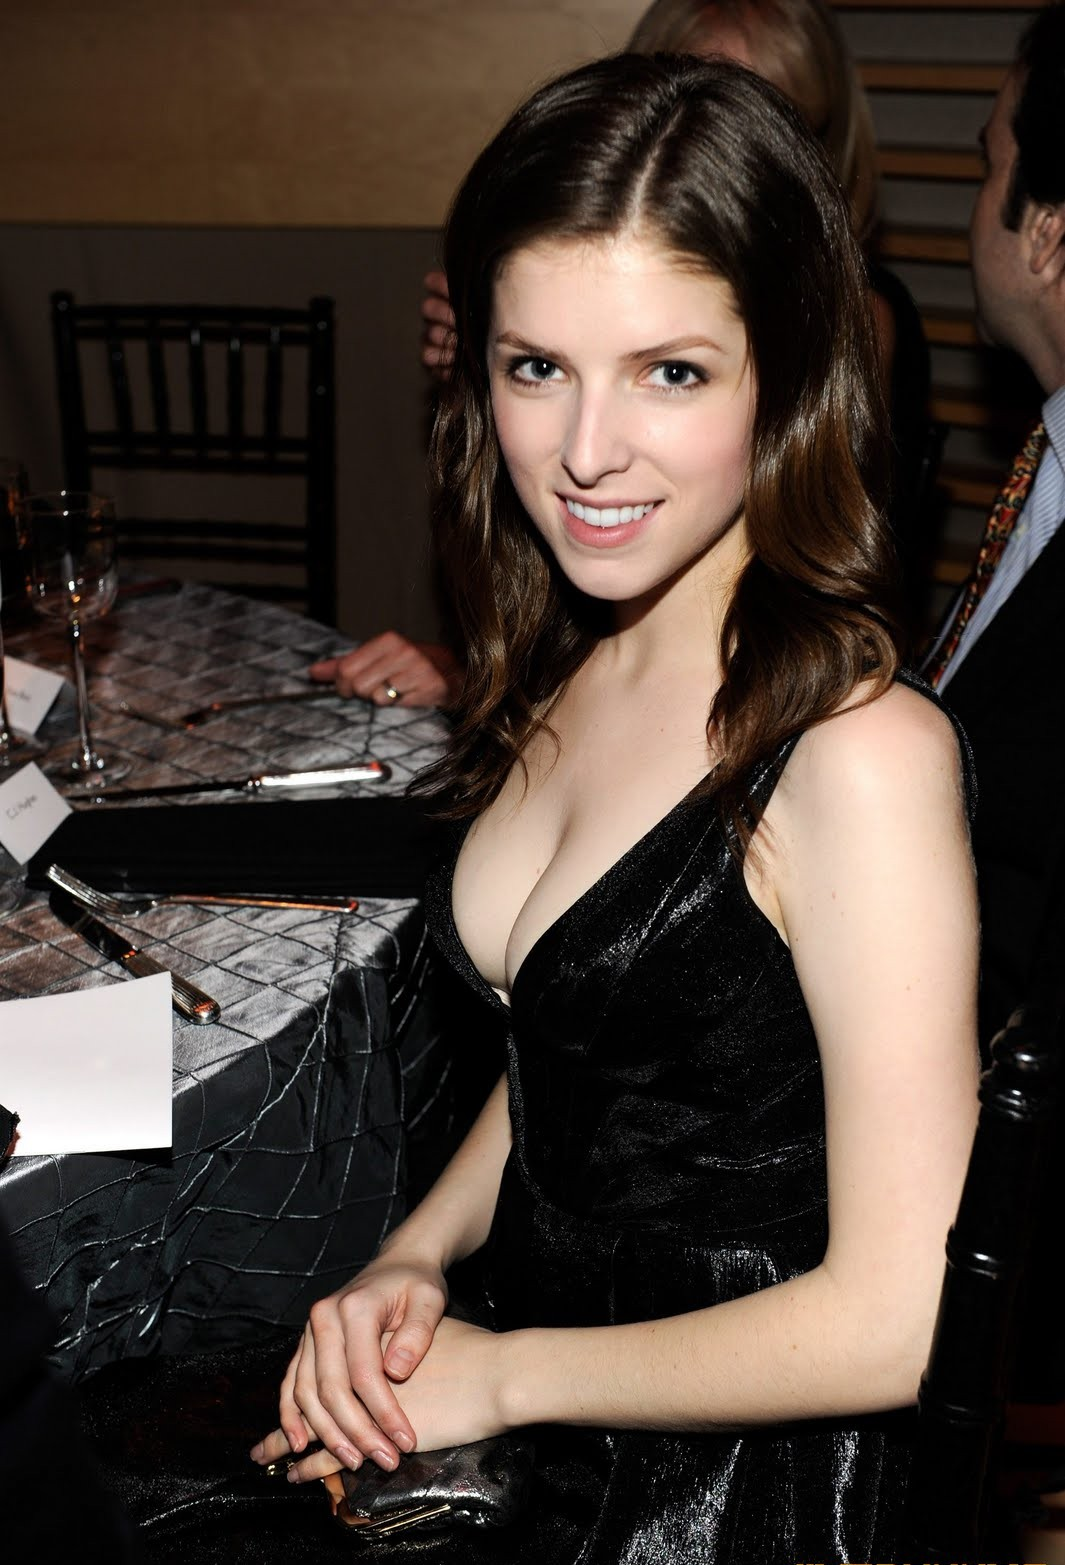 Anna Kendrick Hot Pics, Sexy Near-Nude Photos